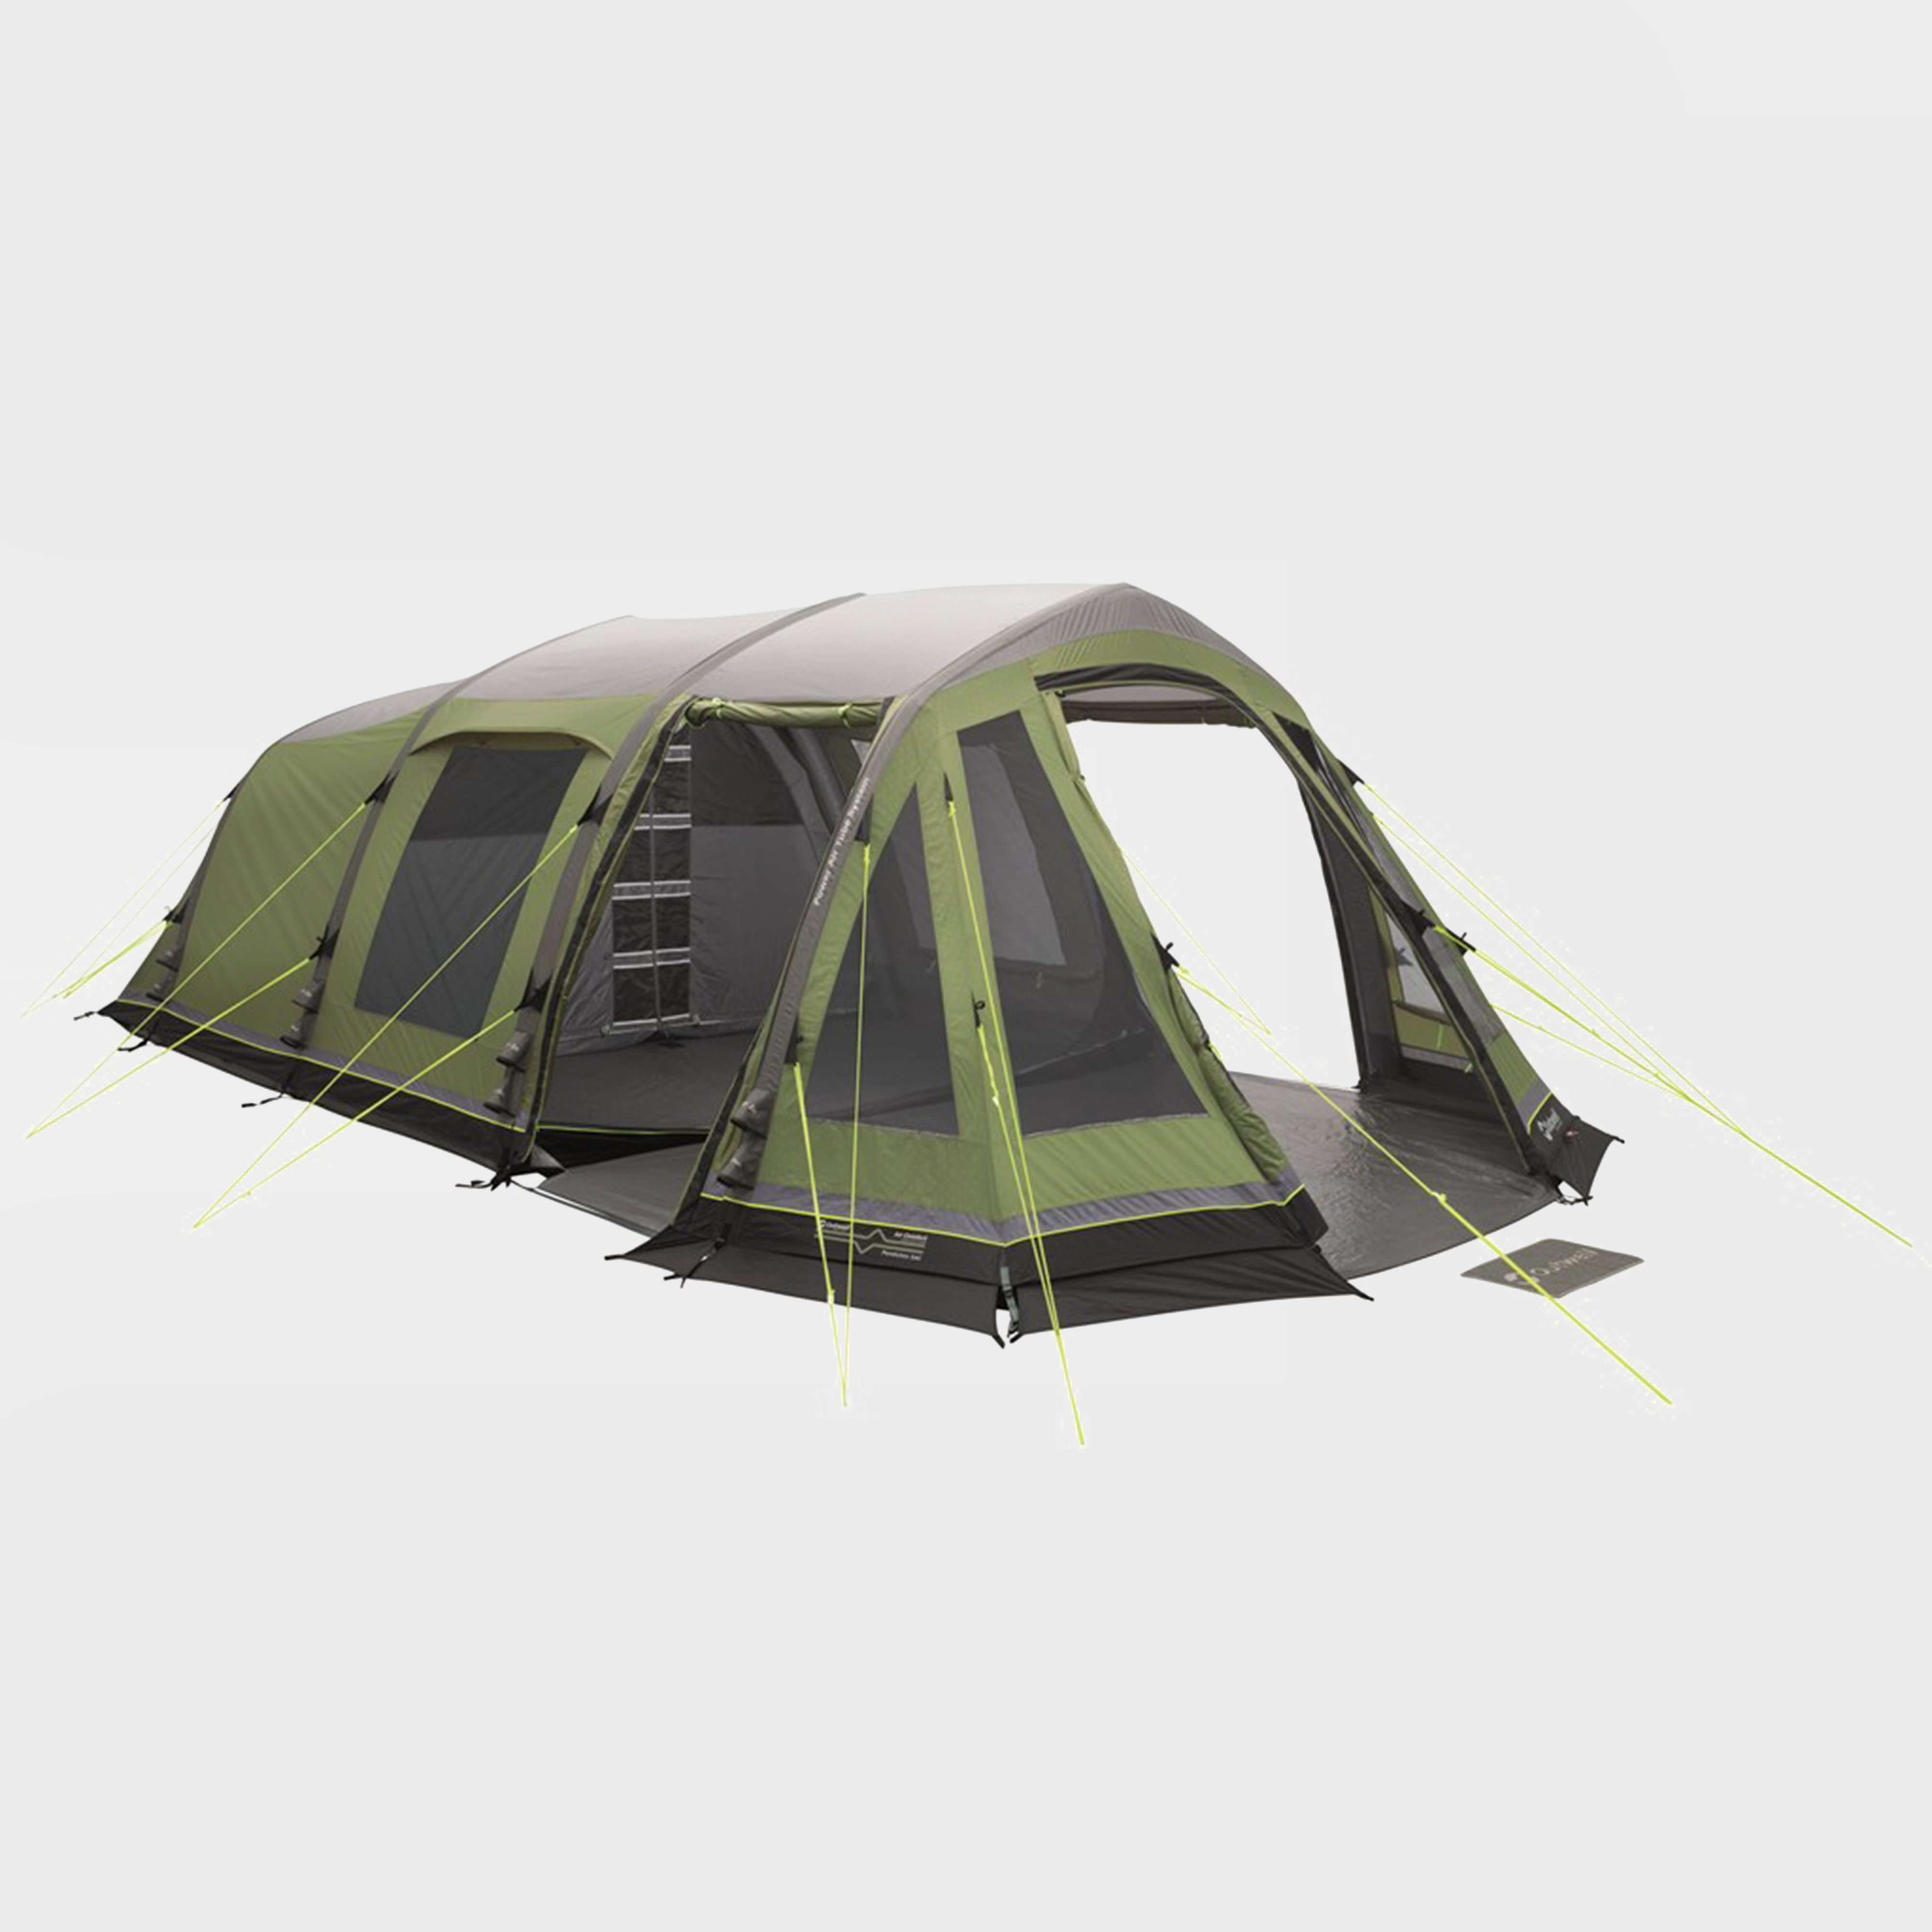 OUTWELL Penticton 5AC Tent